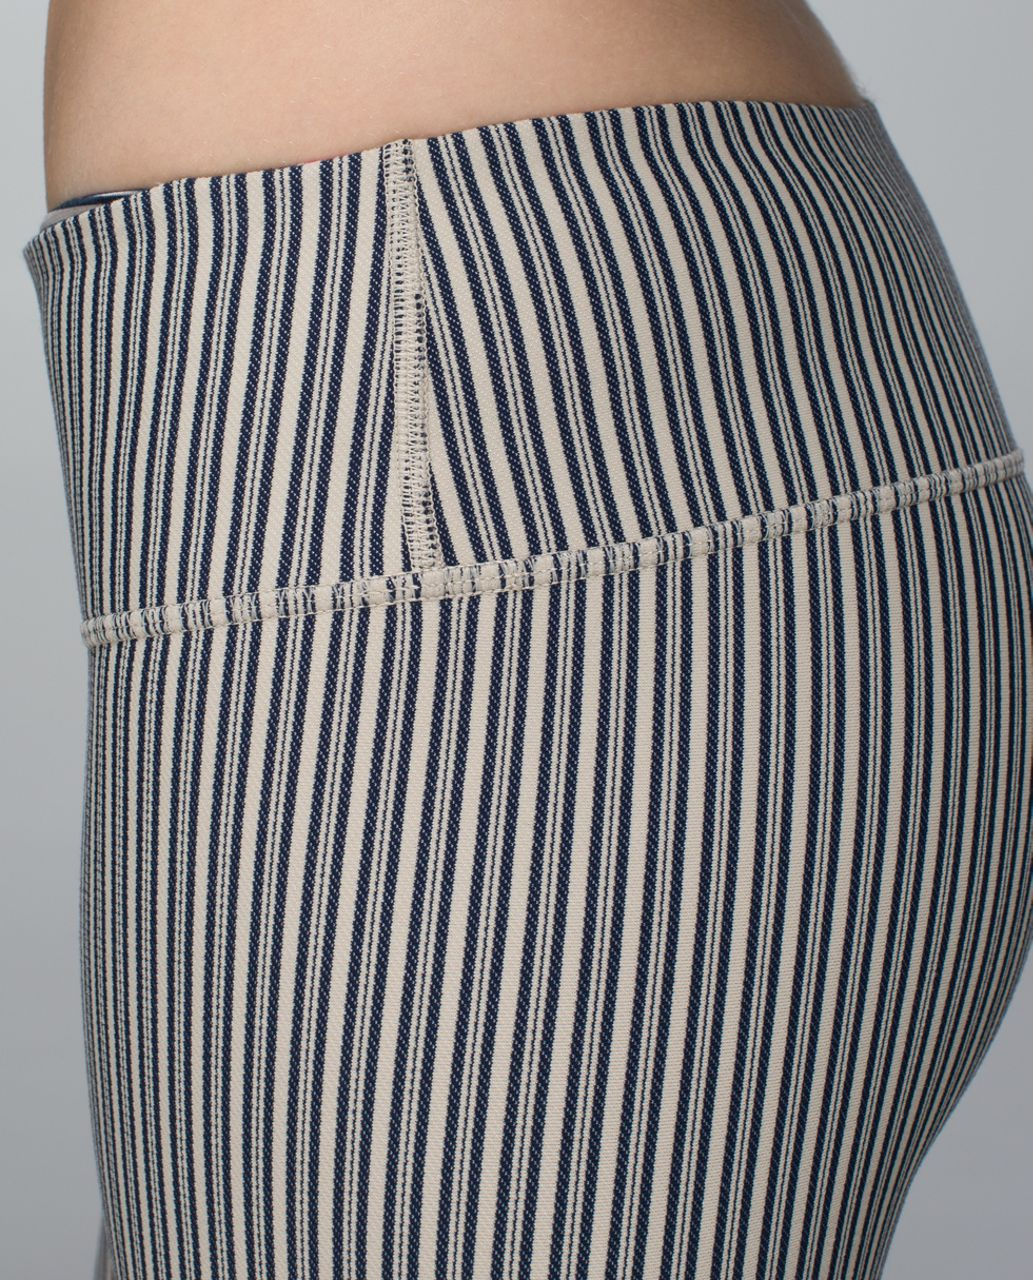 Lululemon Wunder Under Pant (Print) - Pine Stripe Inkwell Mojave Tan / White / Inky Floral Ghost Inkwell Bumble Berry